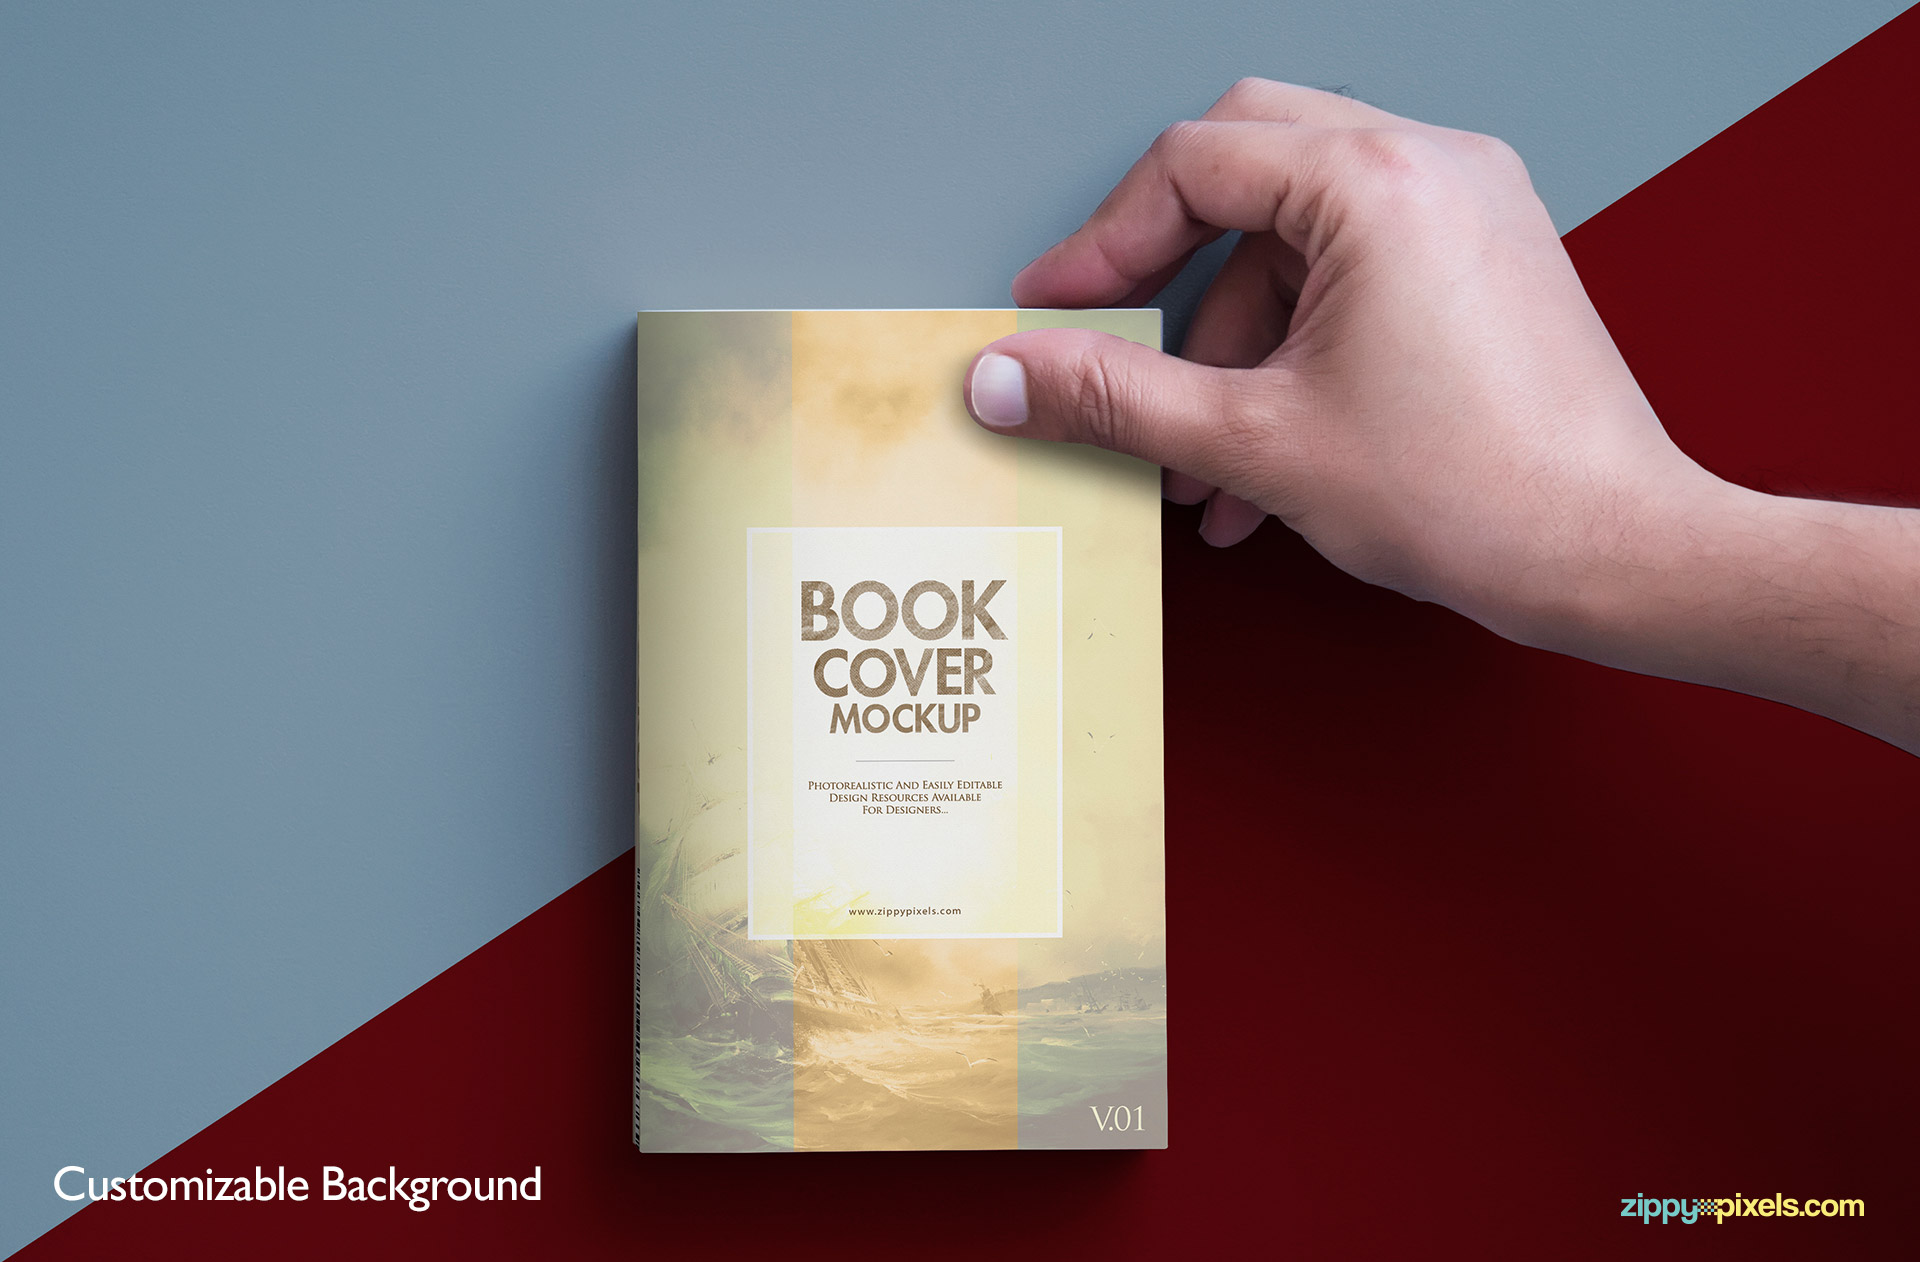 Softcover-book-mockup-customizable-background-PSD-824x542